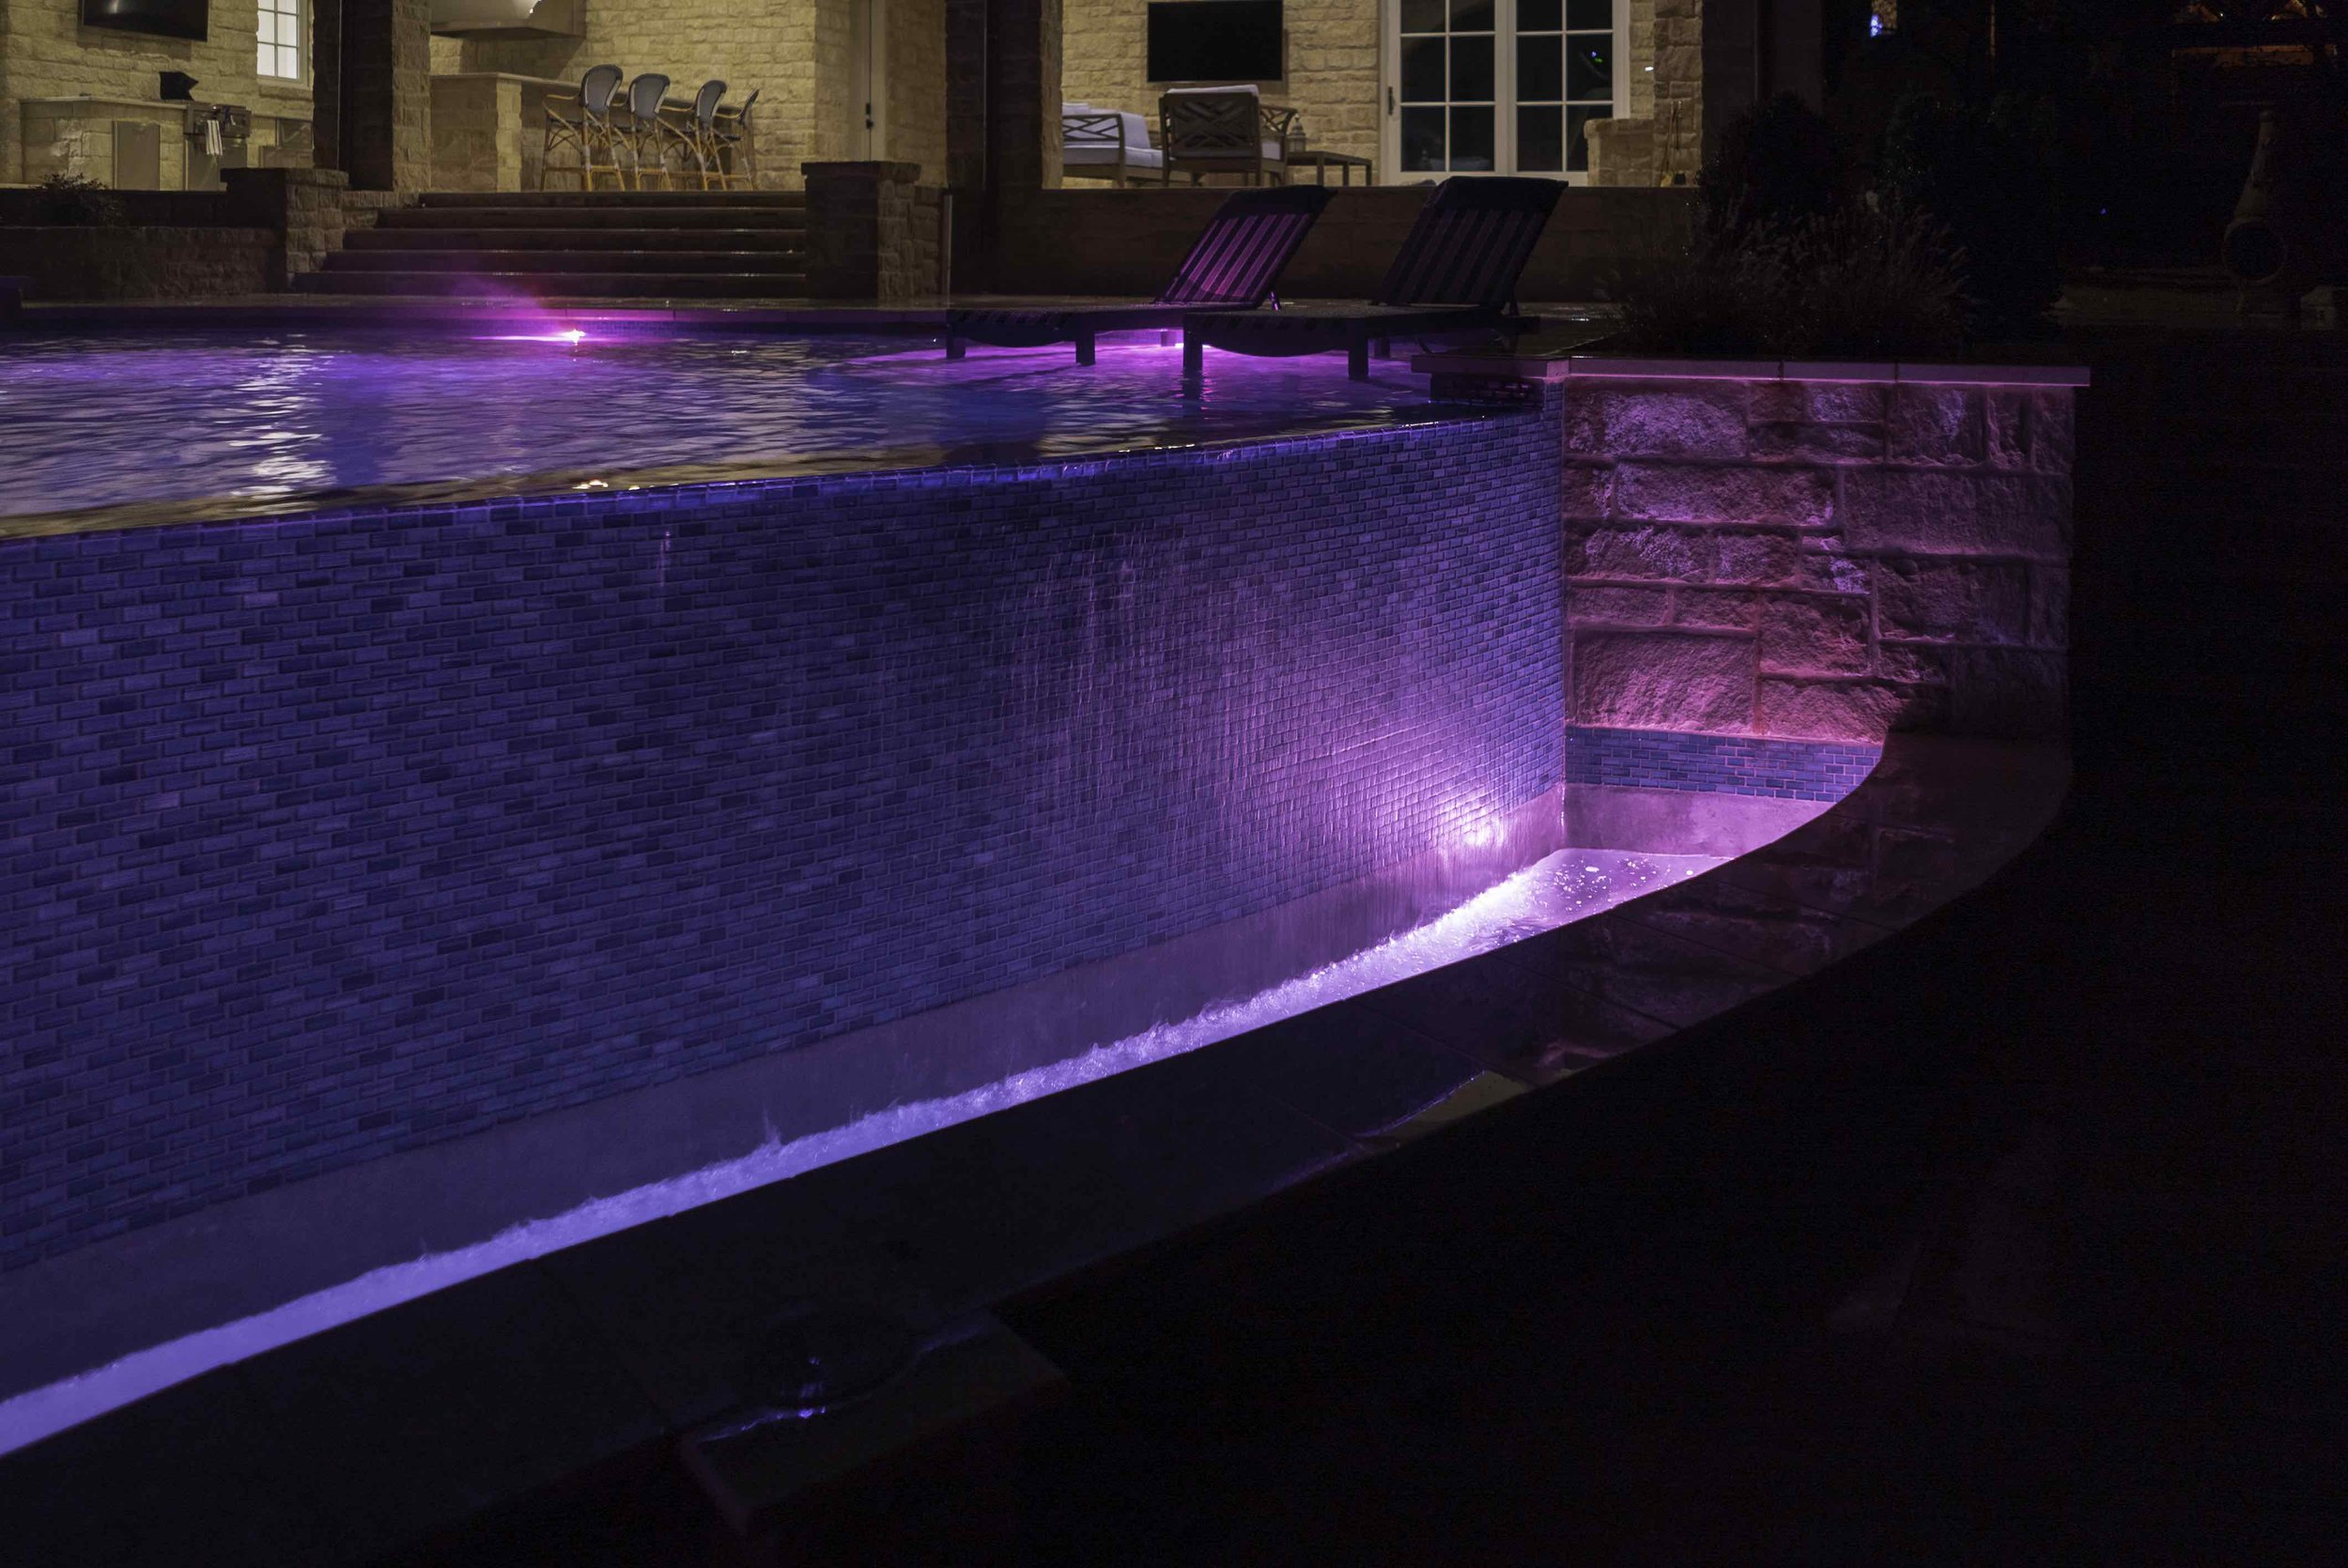 Myers Pool | AQUASCAPE | evening | deep color | ANDREW G | 3x2 | Print Ready - 20.jpg